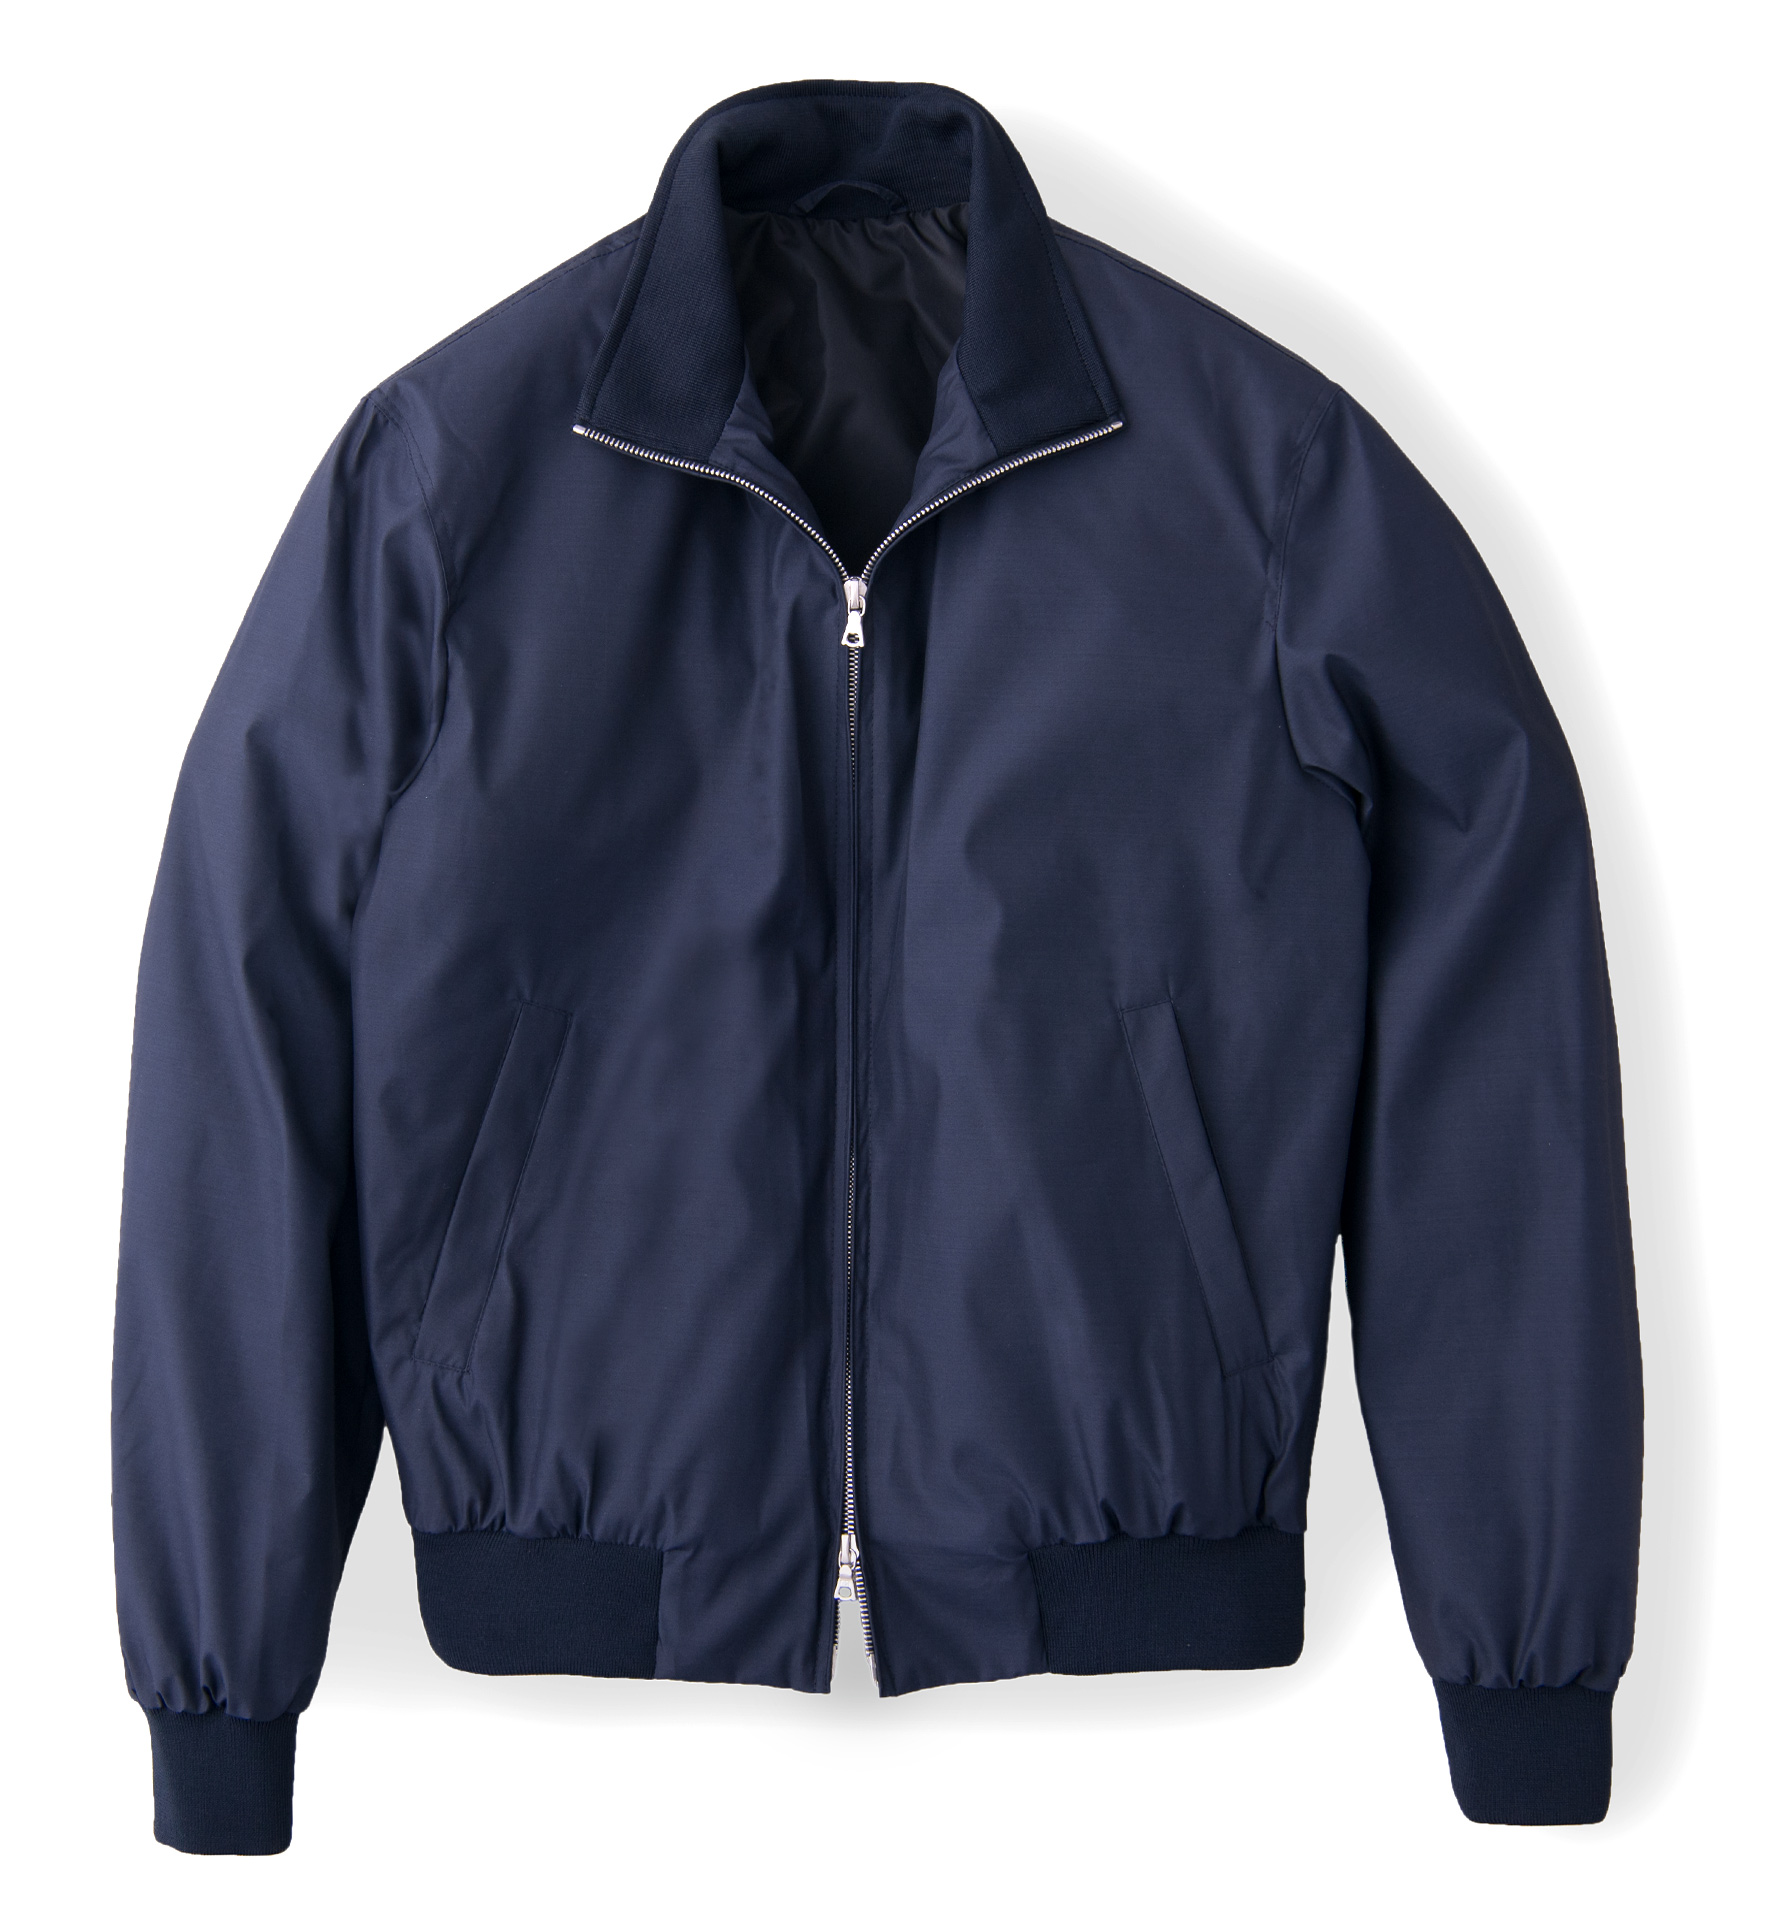 Zoom Image of Lucca Navy Wool and Silk Performance Jacket